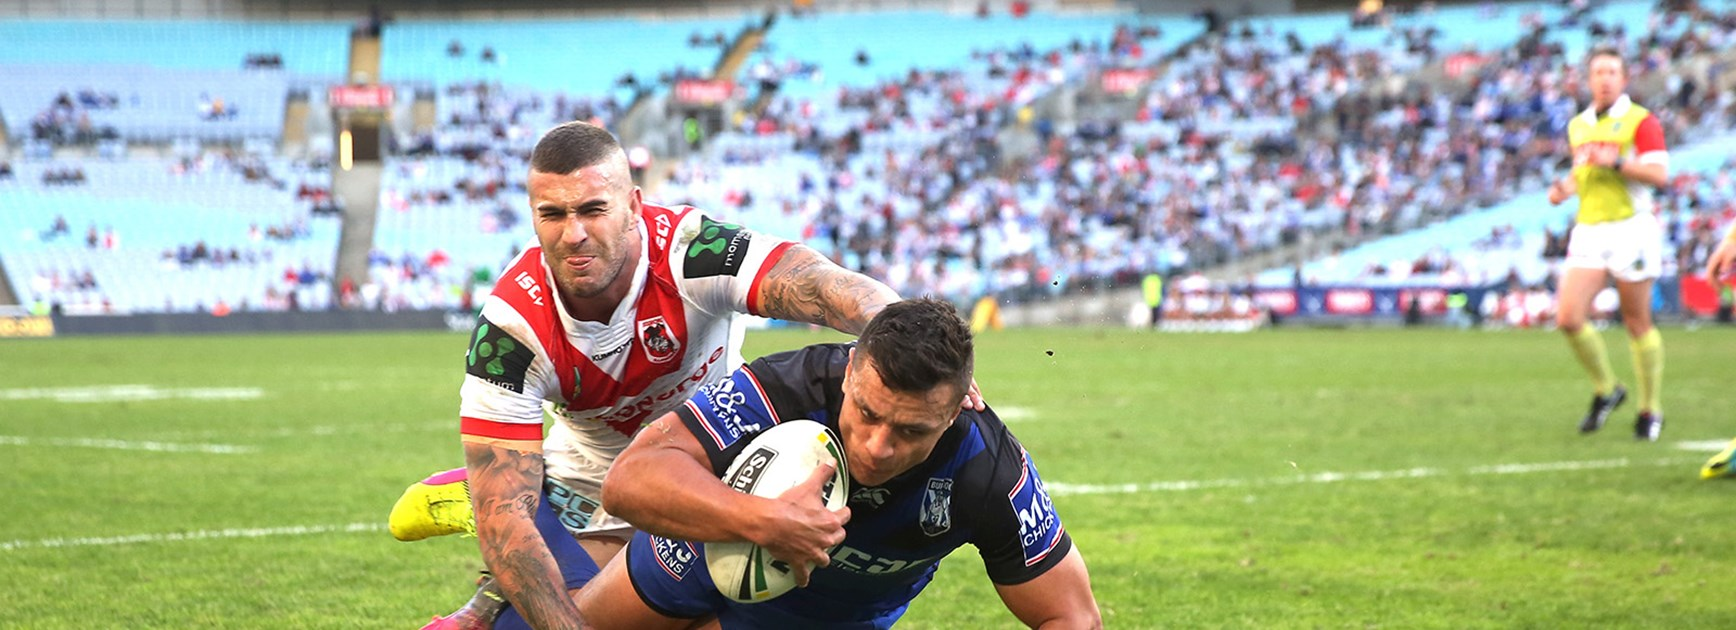 Sam Perrett scores for the Bulldogs against the Dragons at ANZ Stadium.